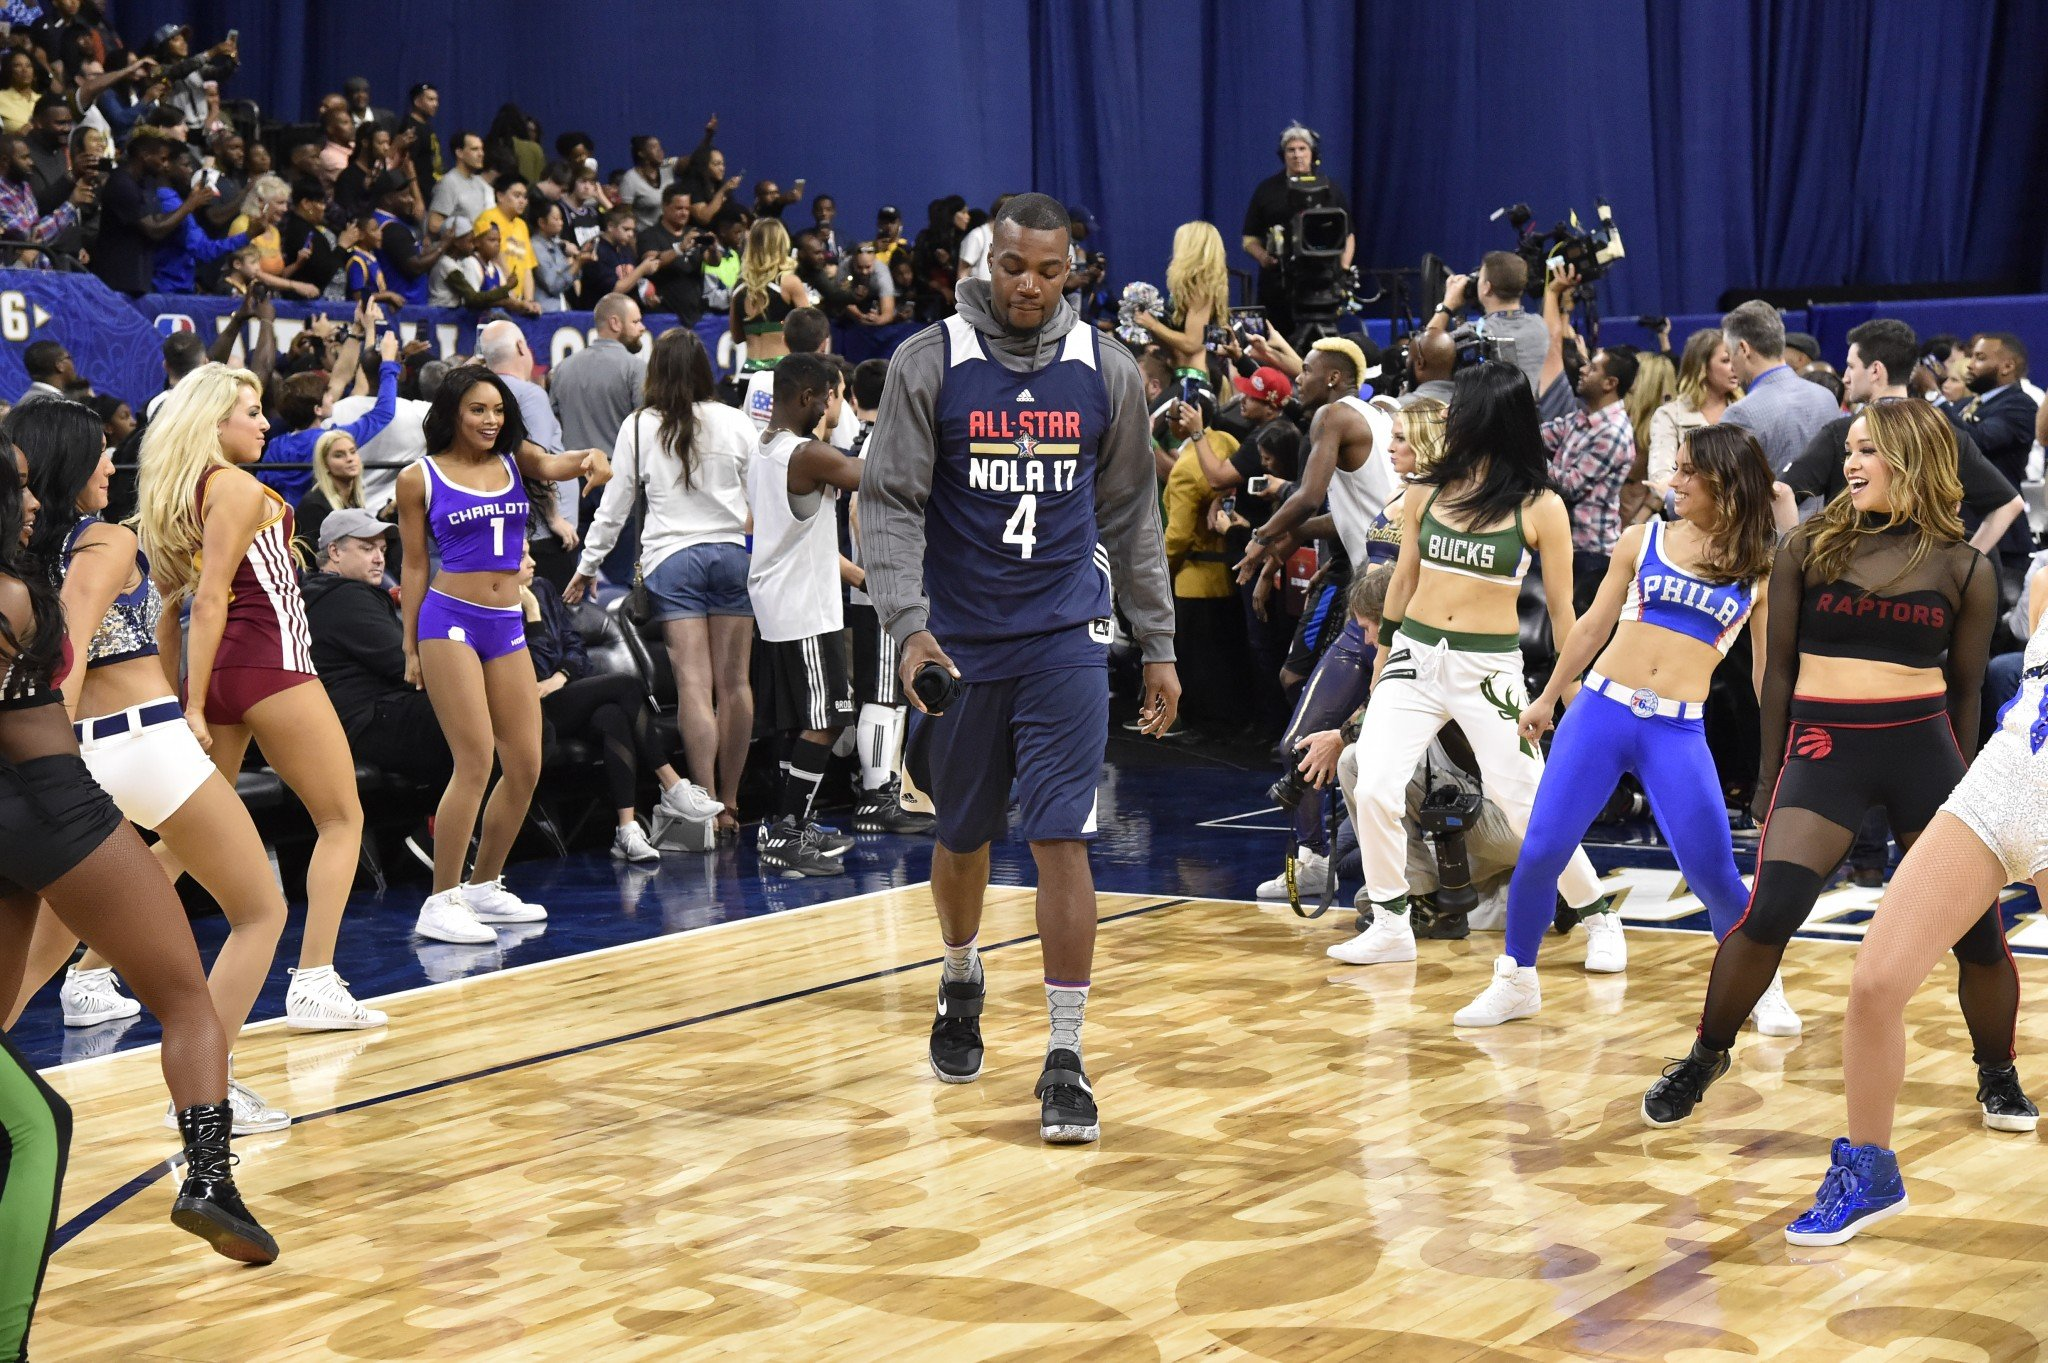 Paul Millsap knows how to make an entrance. (Getty Images)